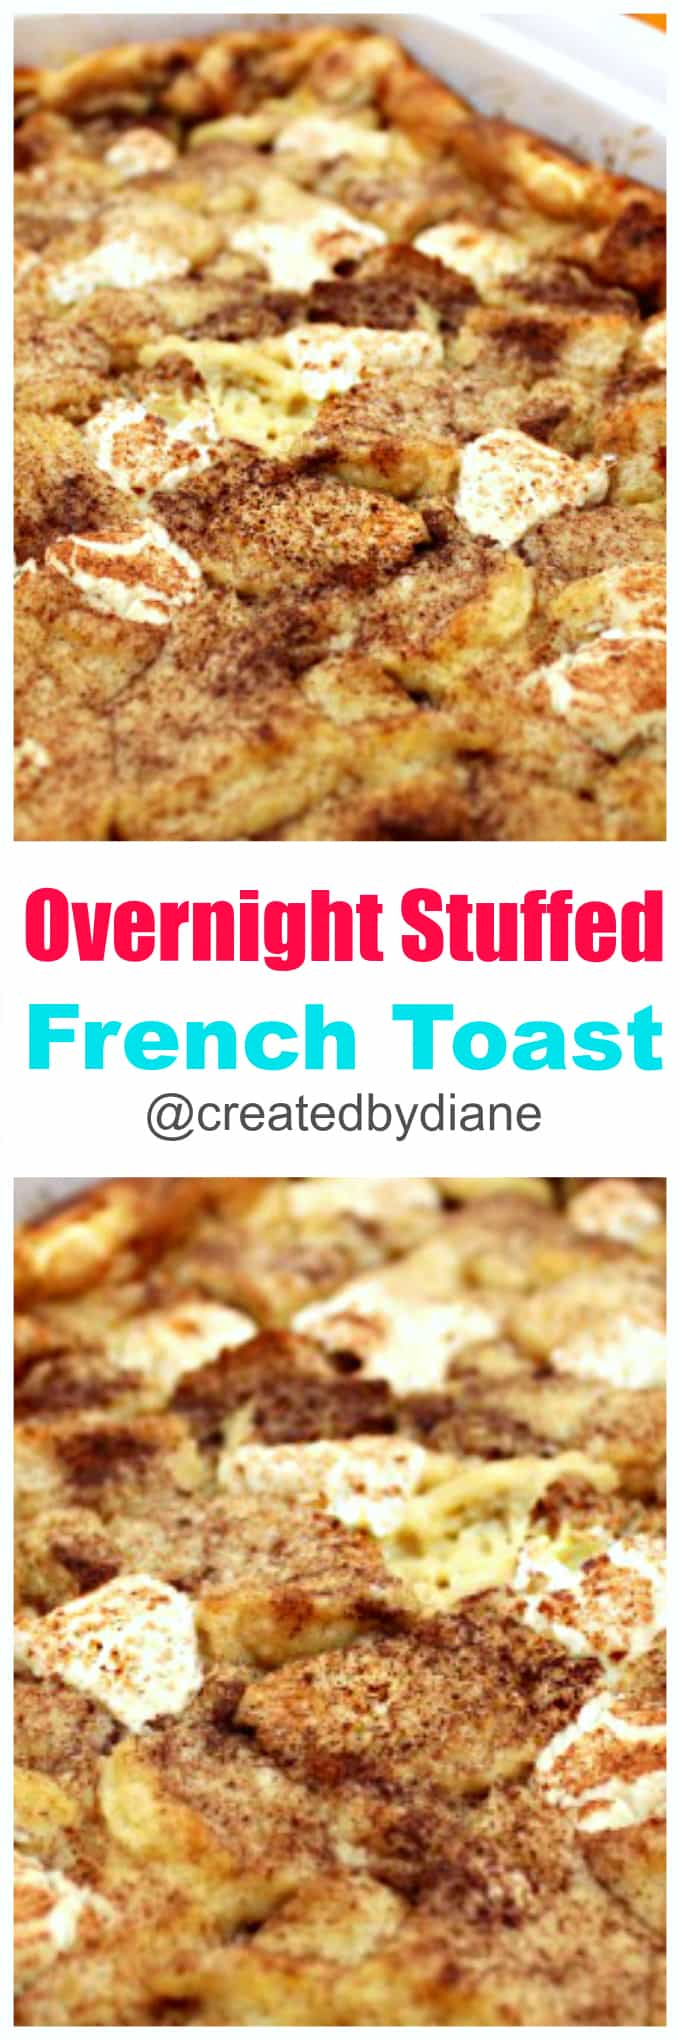 overnight stuffed french toast recipe great for the holidays @createdbydiane